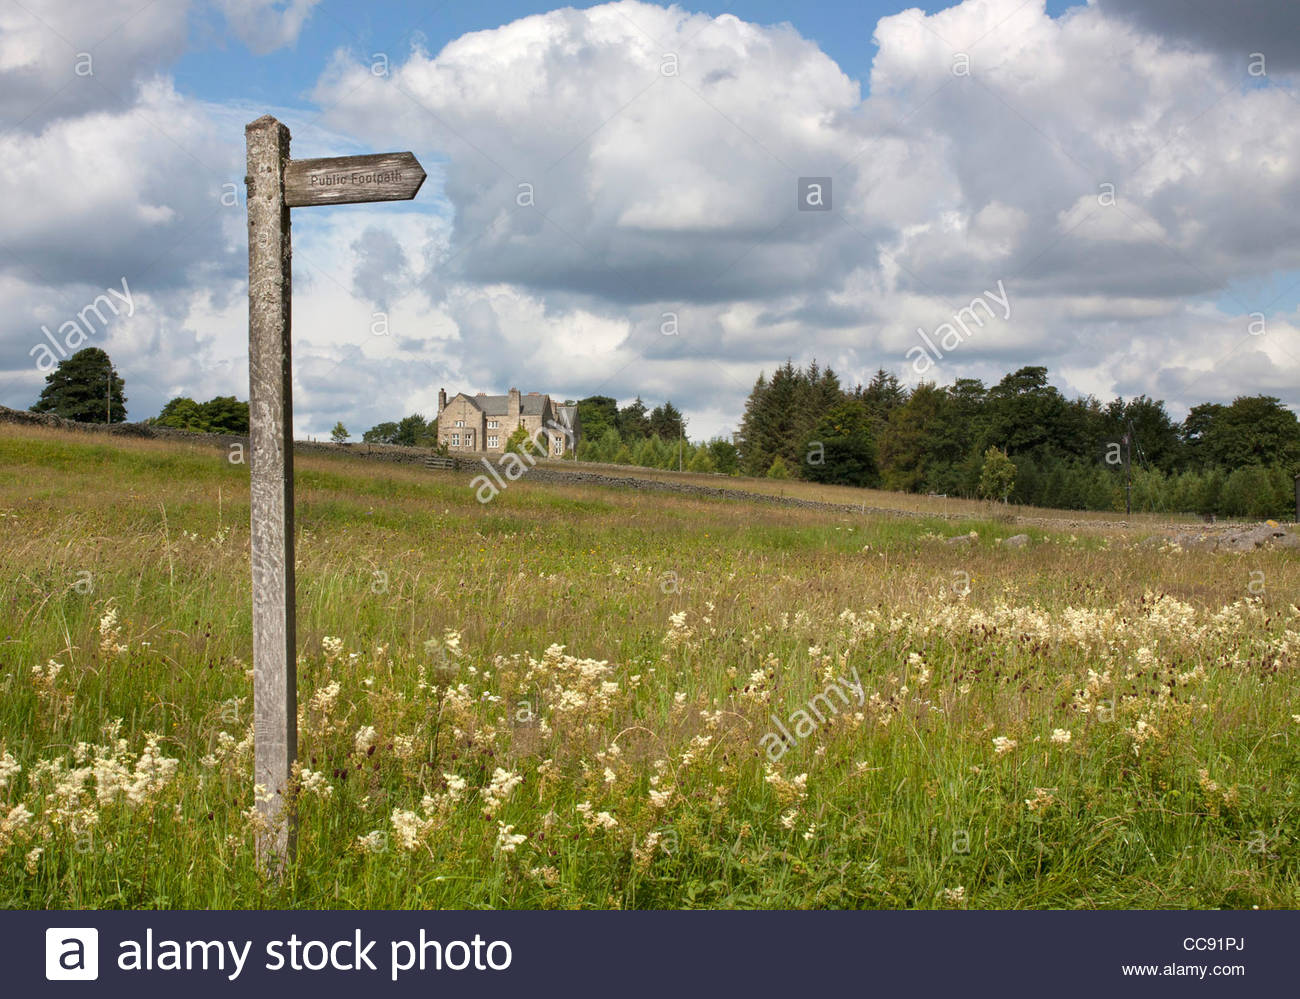 Signpost directing the path through the hayfields in Holwick, Middleton-in-Teesdale, Co Durham - Stock Image